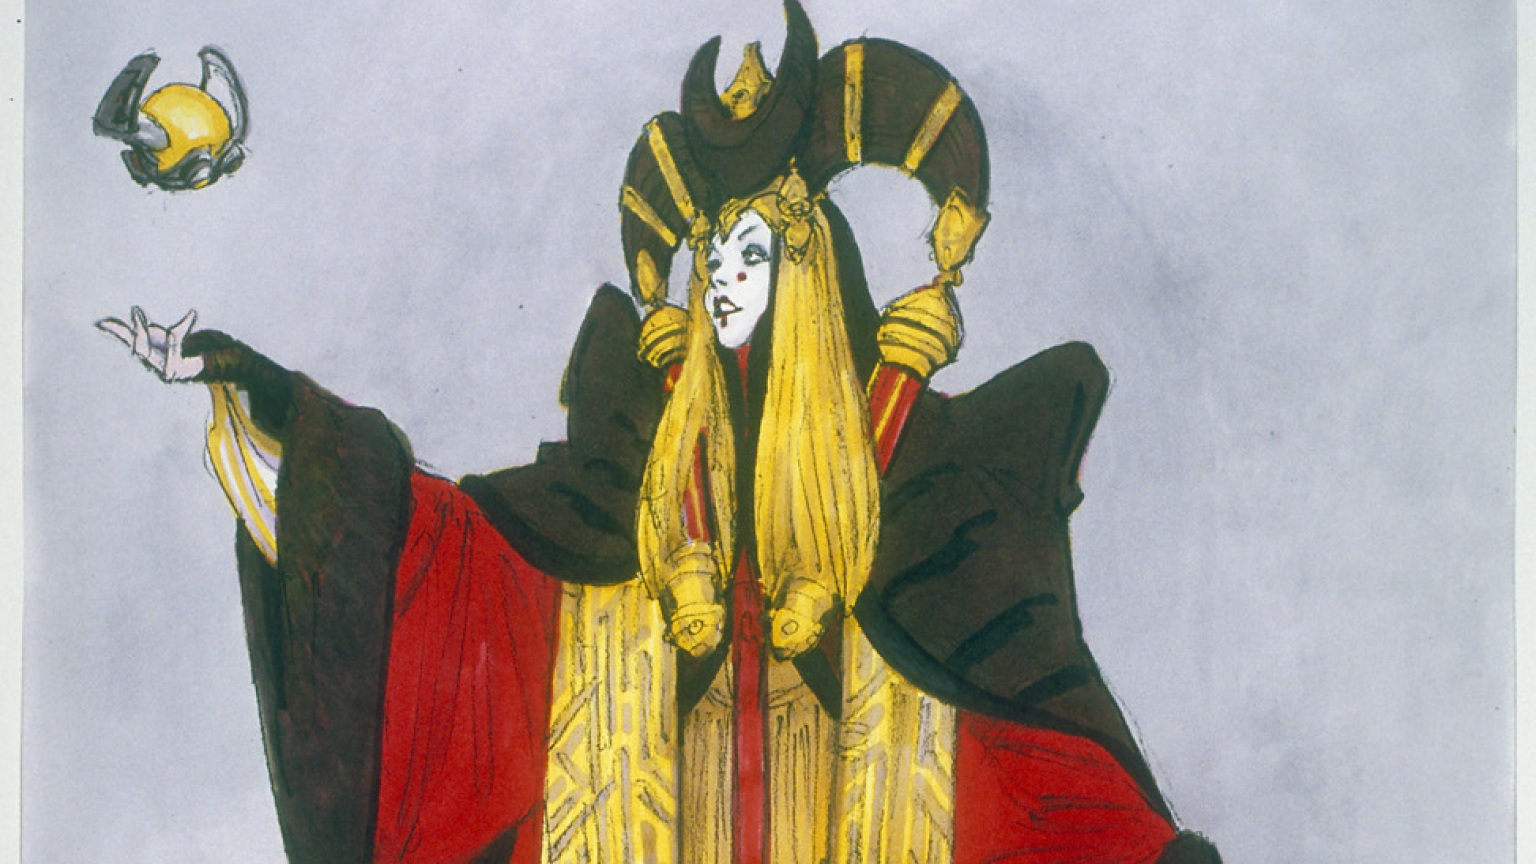 Star Wars and The Power of Costume - Queen Amidala concept art